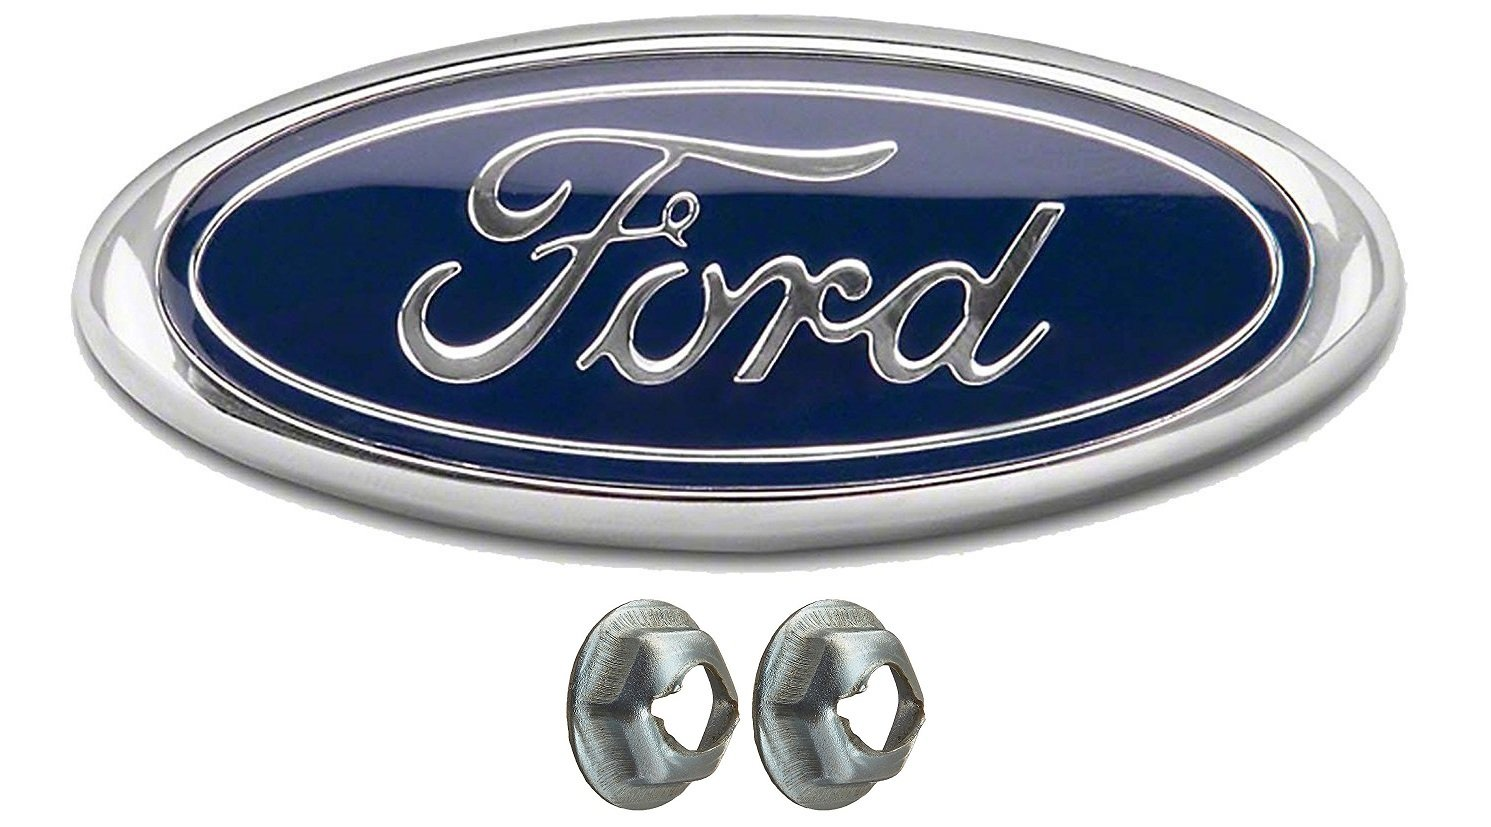 Oval 9X3.5 Muzzys FORD F150 Dark Blue Grille or Tailgate Emblem WITH NUTS 2005-14 Front Grill Badge Name Plate Also Fits 05-07 F250 F350 11-14 Edge 11-16 Explorer 06-11 Ranger Oval 9X3.5 Achoc 9L5Z-9942528-A // AL3Z9942528-B 3 Mounting Tabs